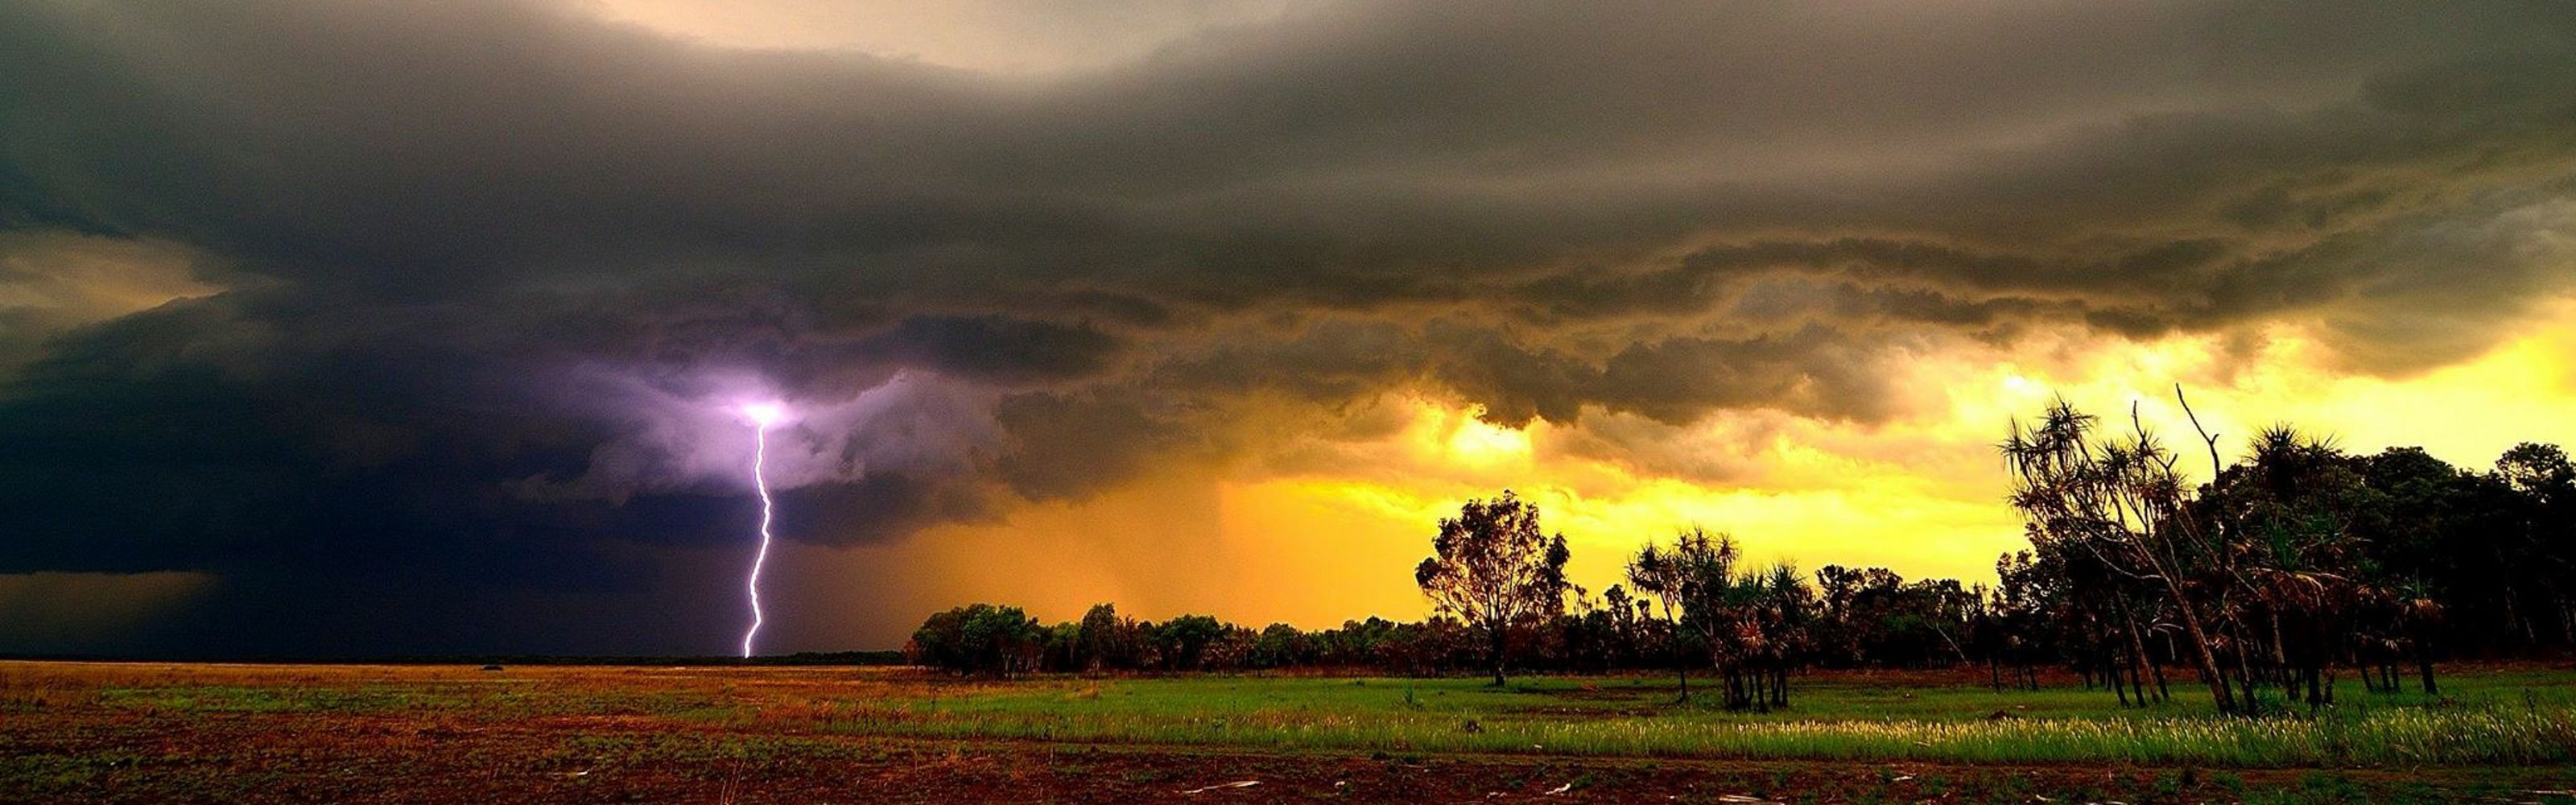 strikes over a field in Northern Territory, Australia.